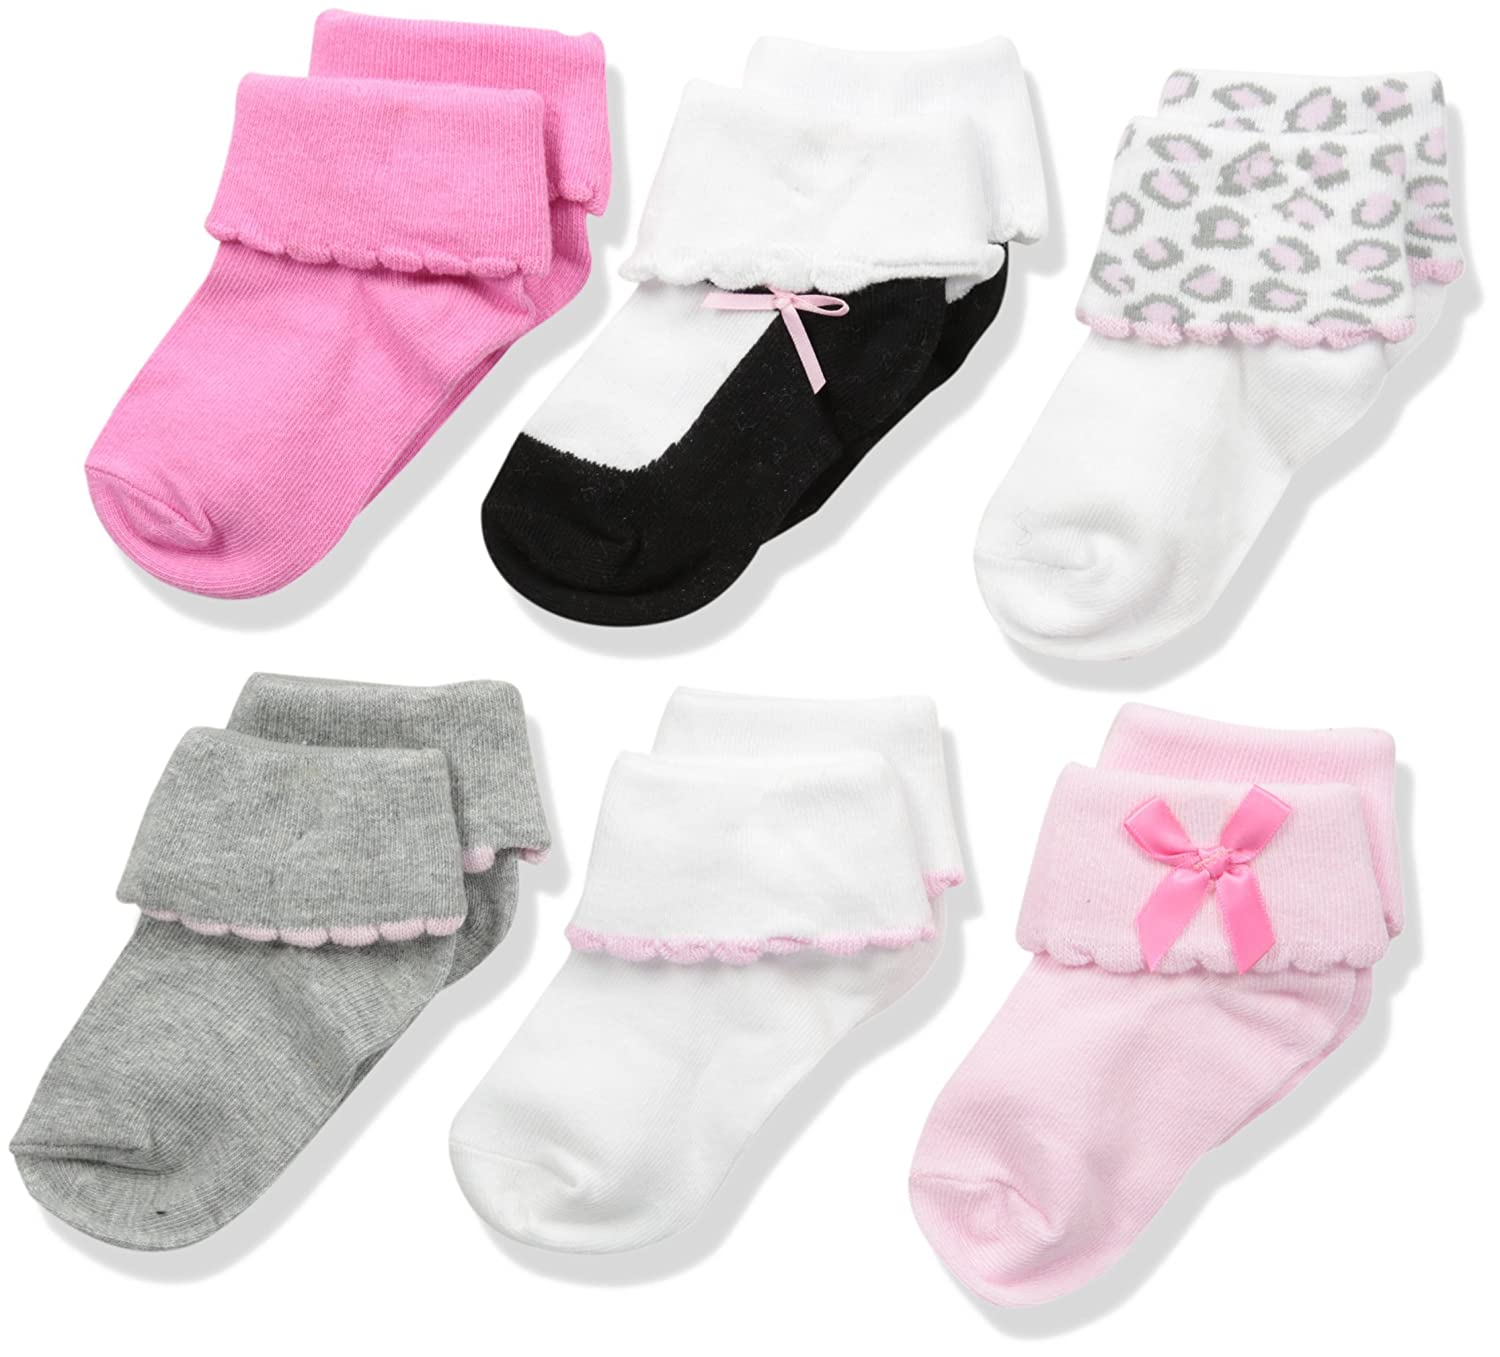 Luvable Friends womens Baby 6 Pair Dressy Cuff Socks 26124